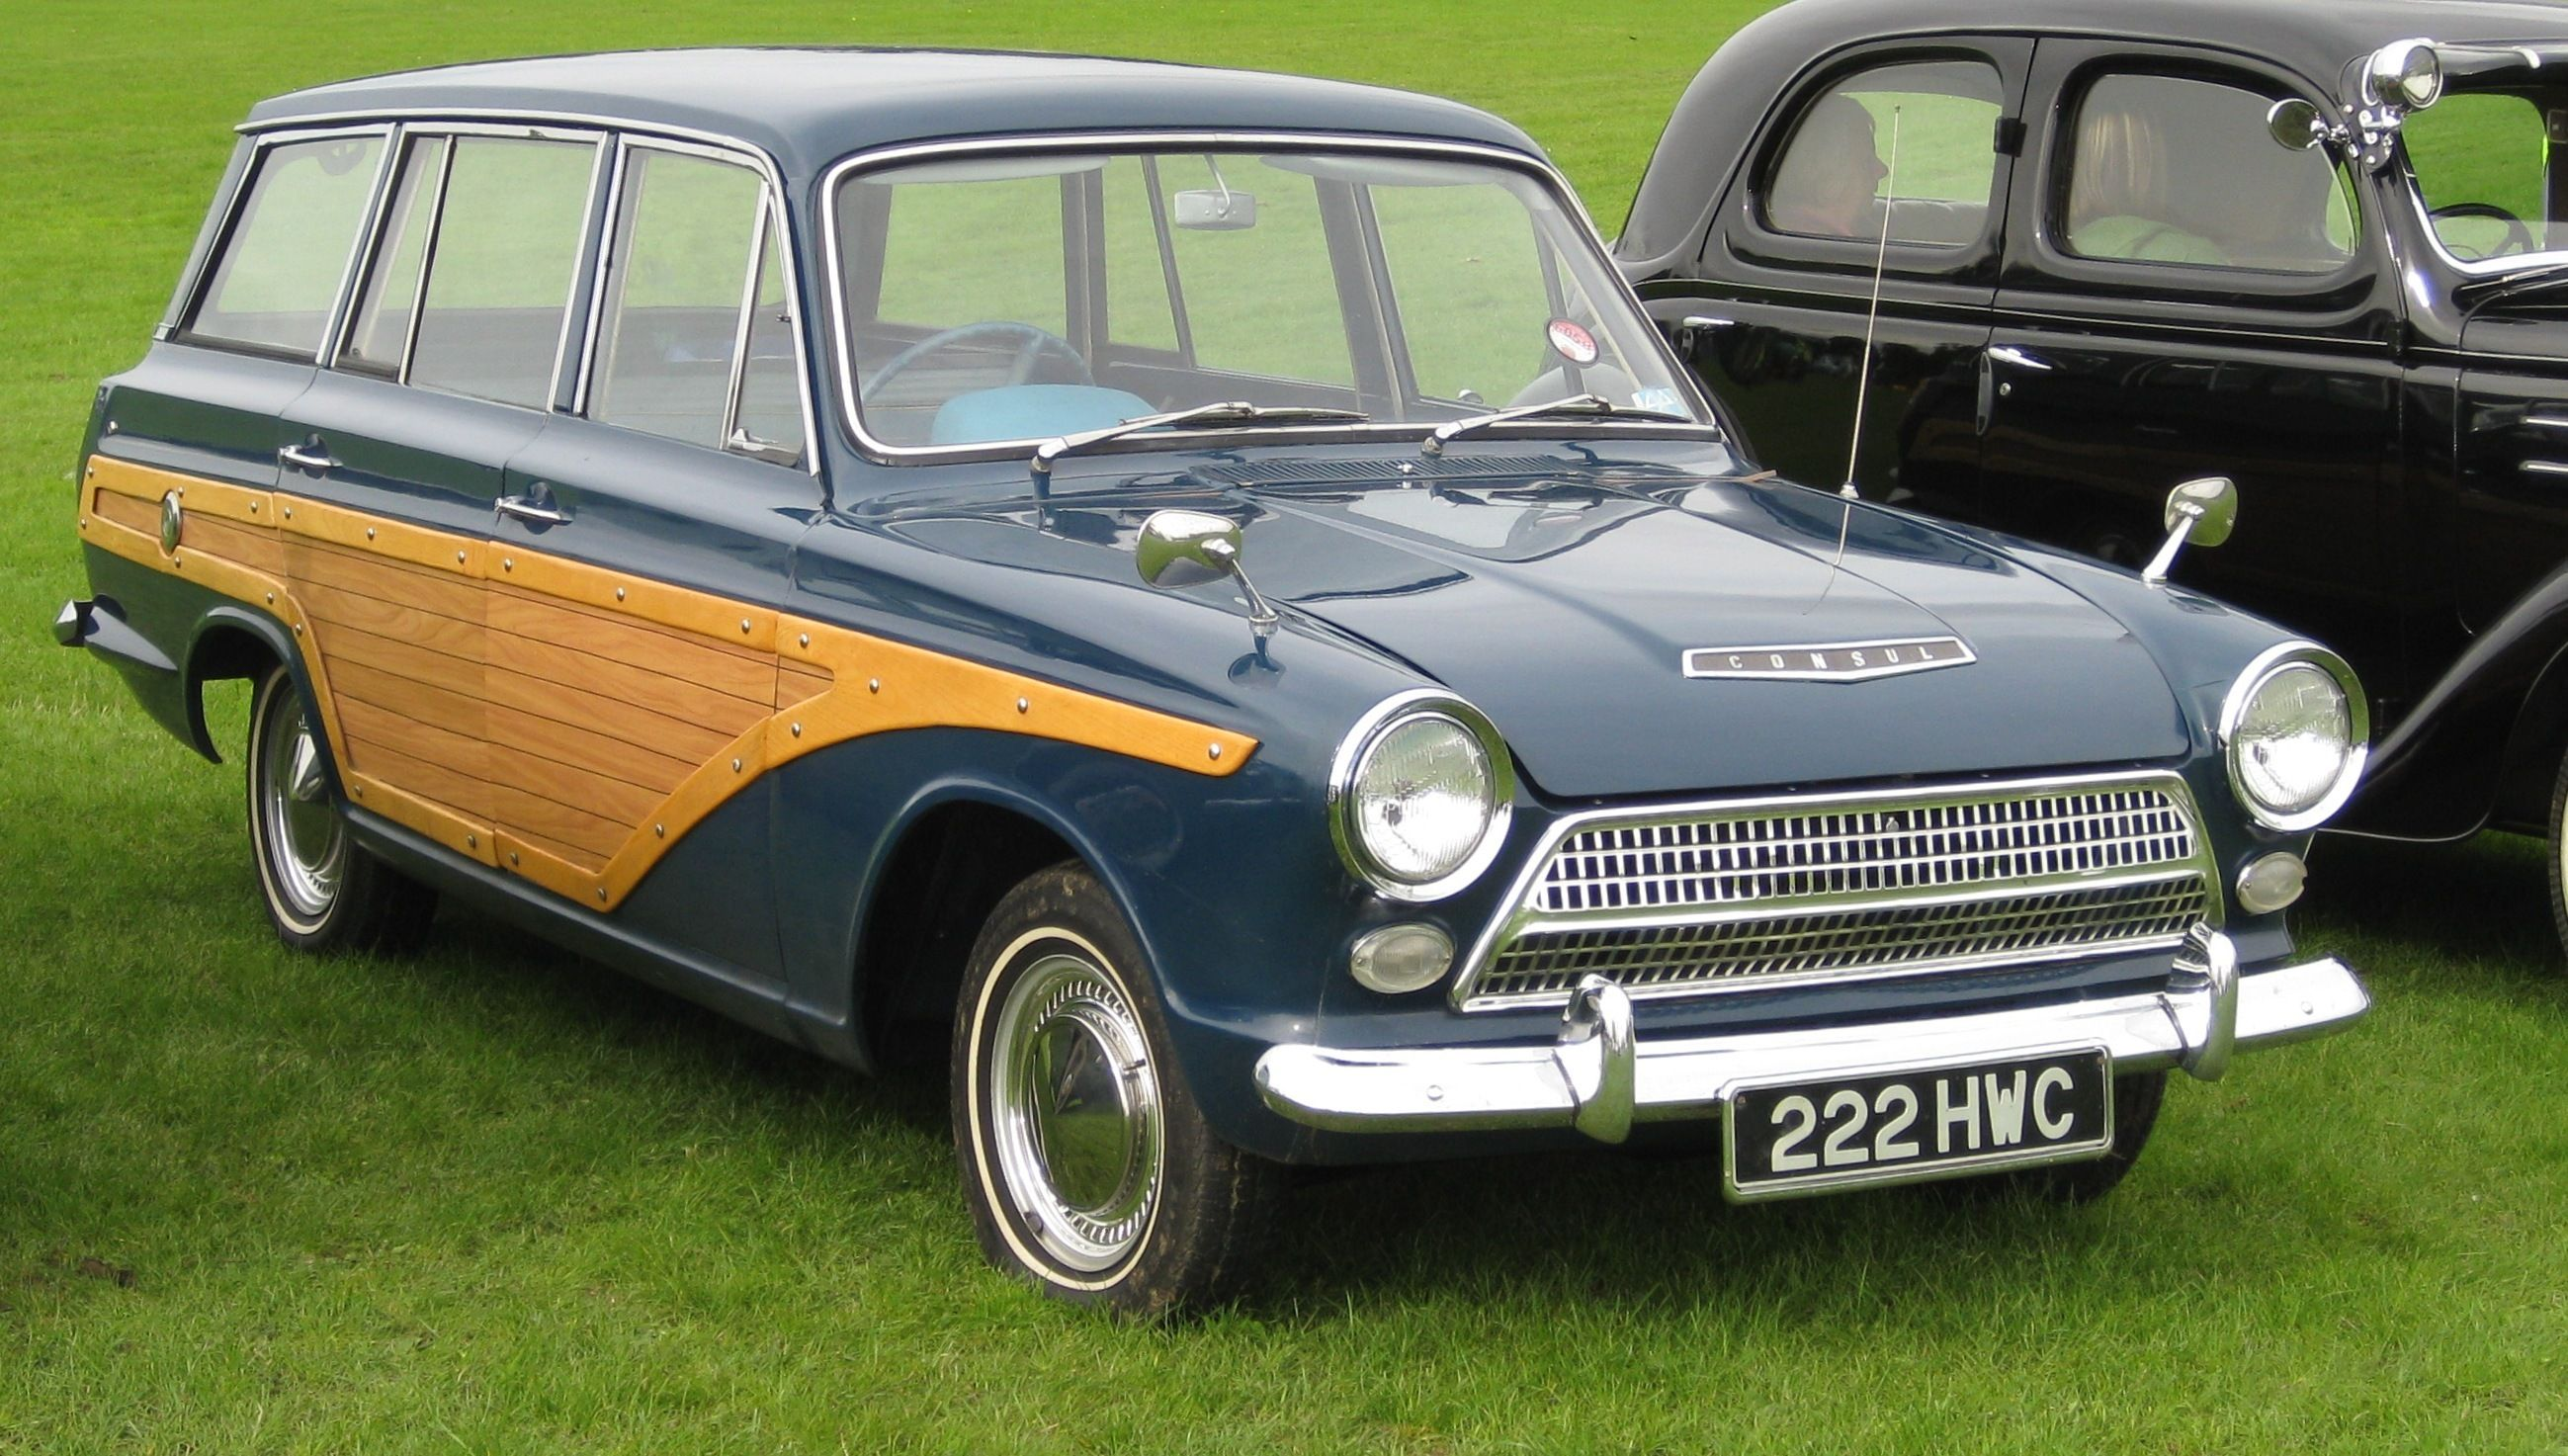 Ford consul cortina estate timber effect 1963 ca ford cortina wikipedia the free encyclopedia